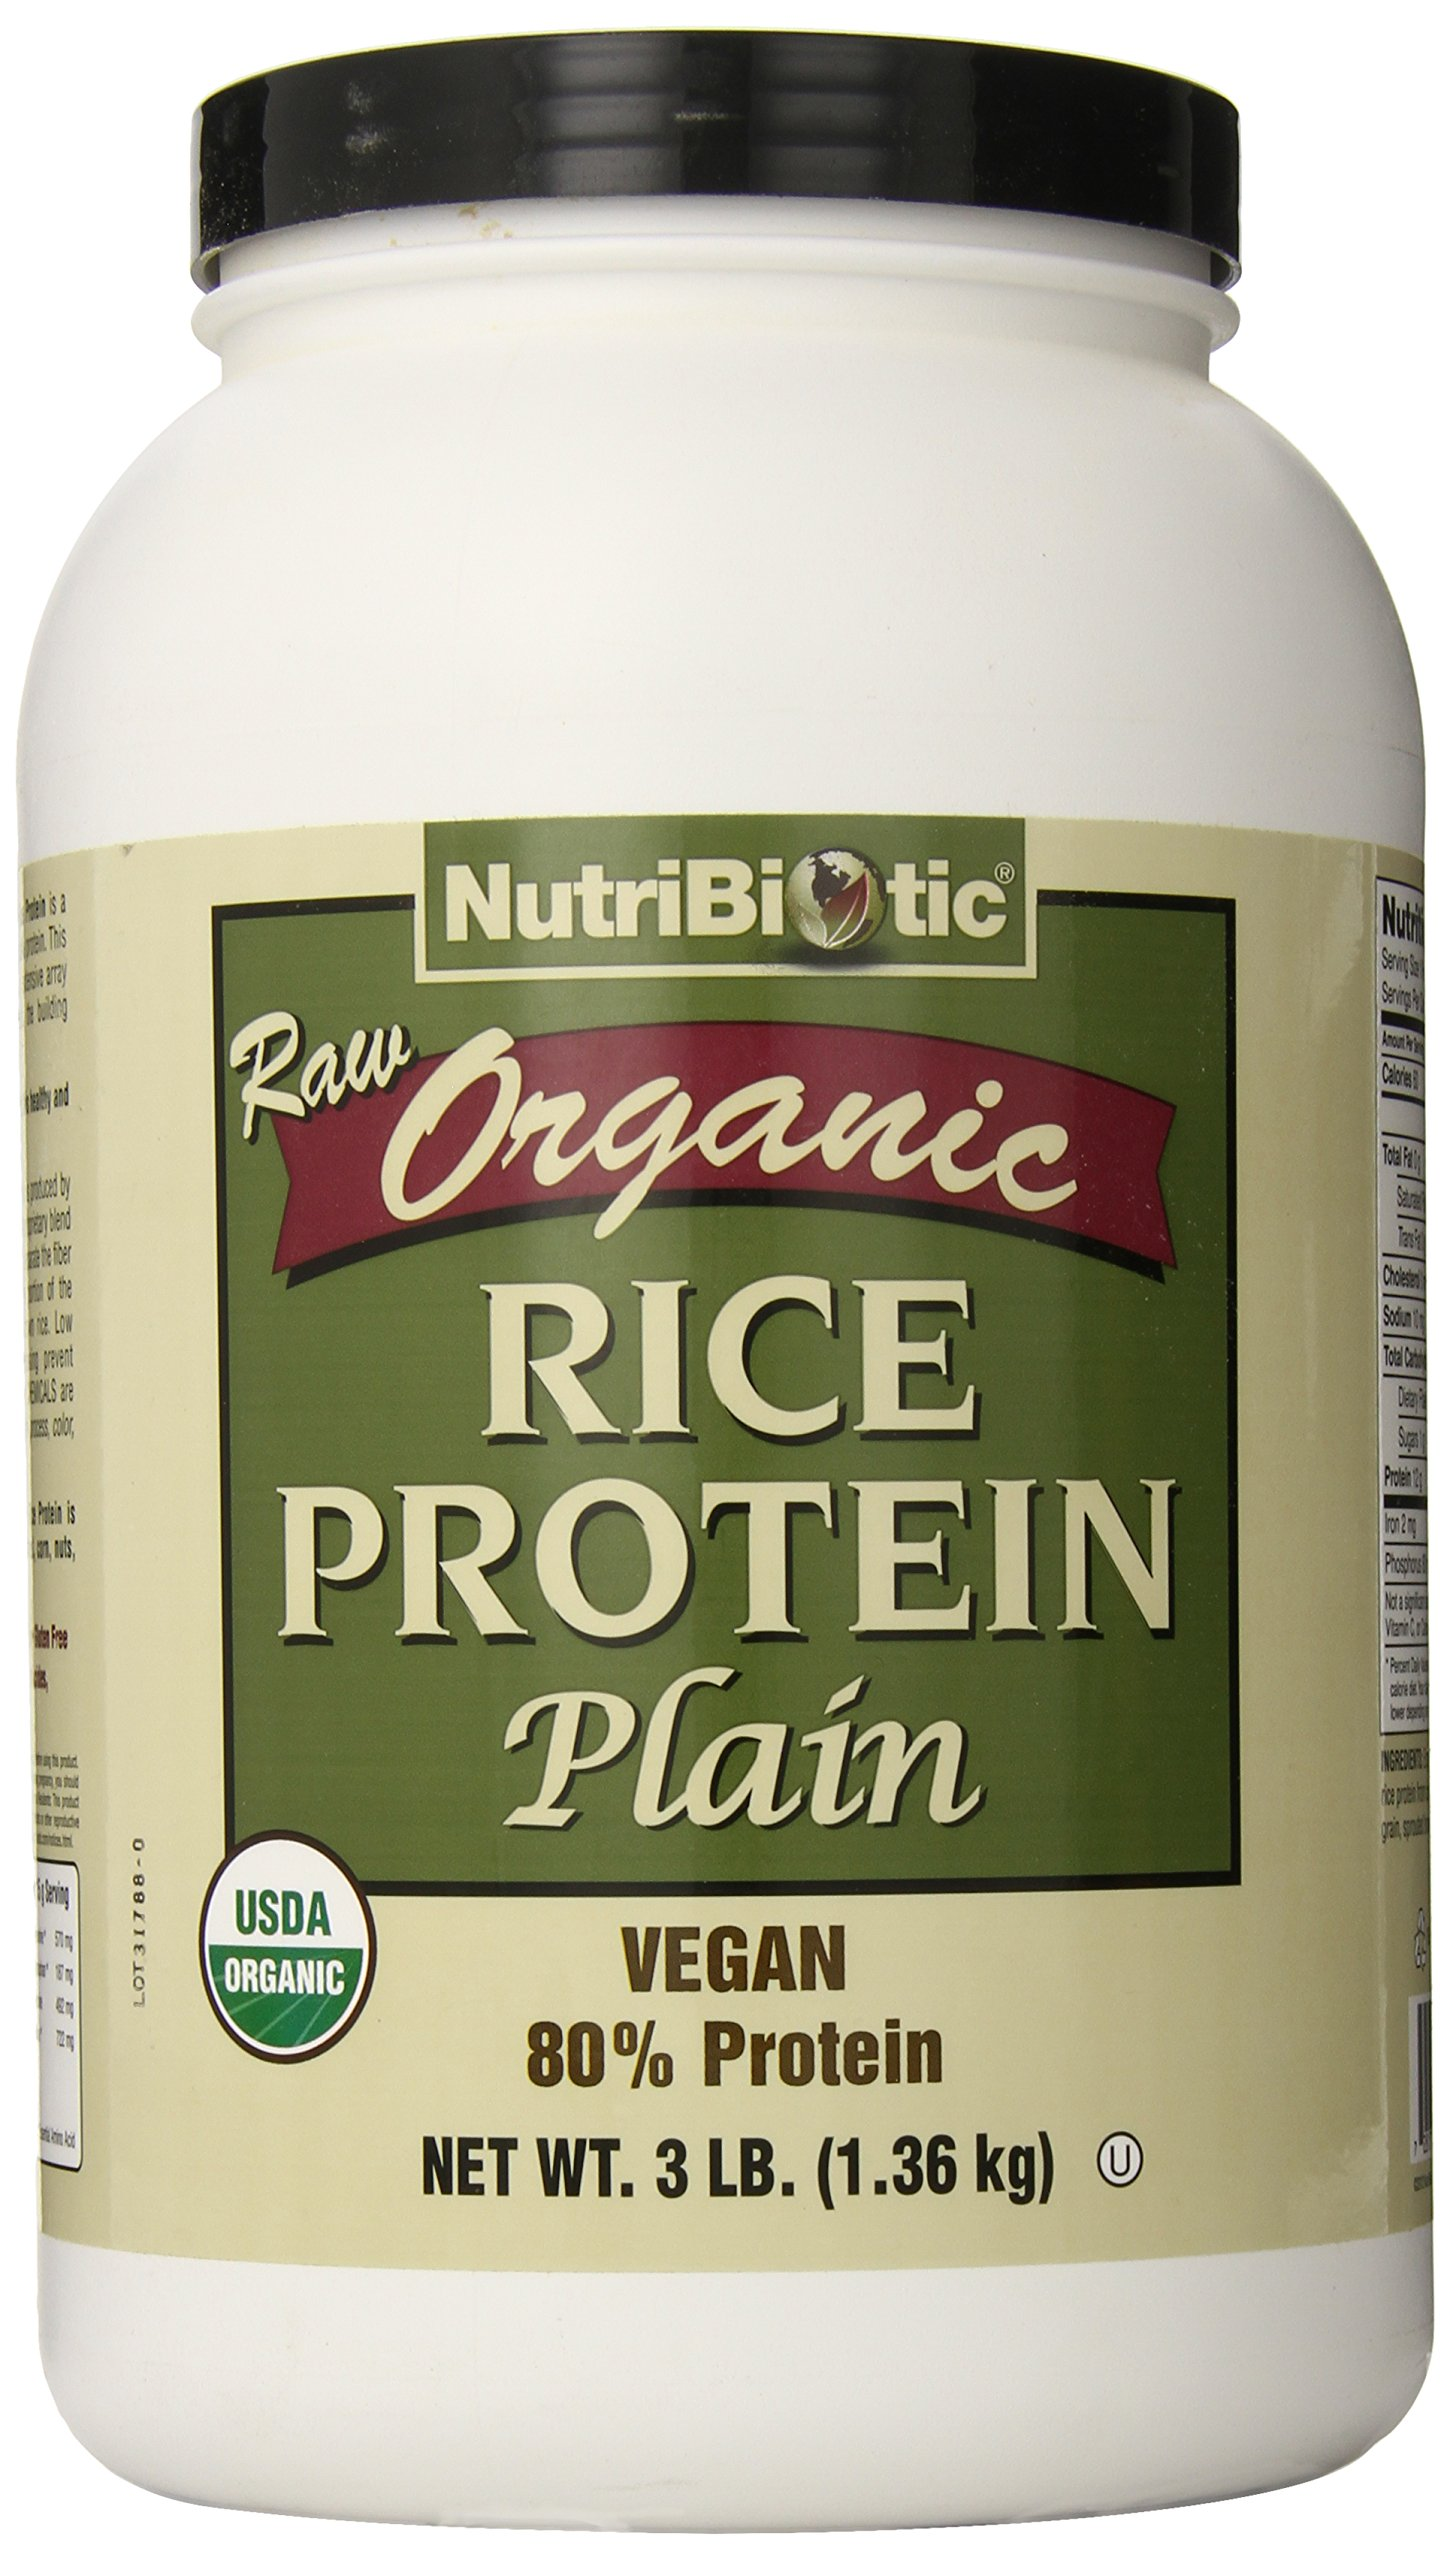 Nutribiotic Organic Rice Protein, Plain, 3 Pound by Nutribiotic